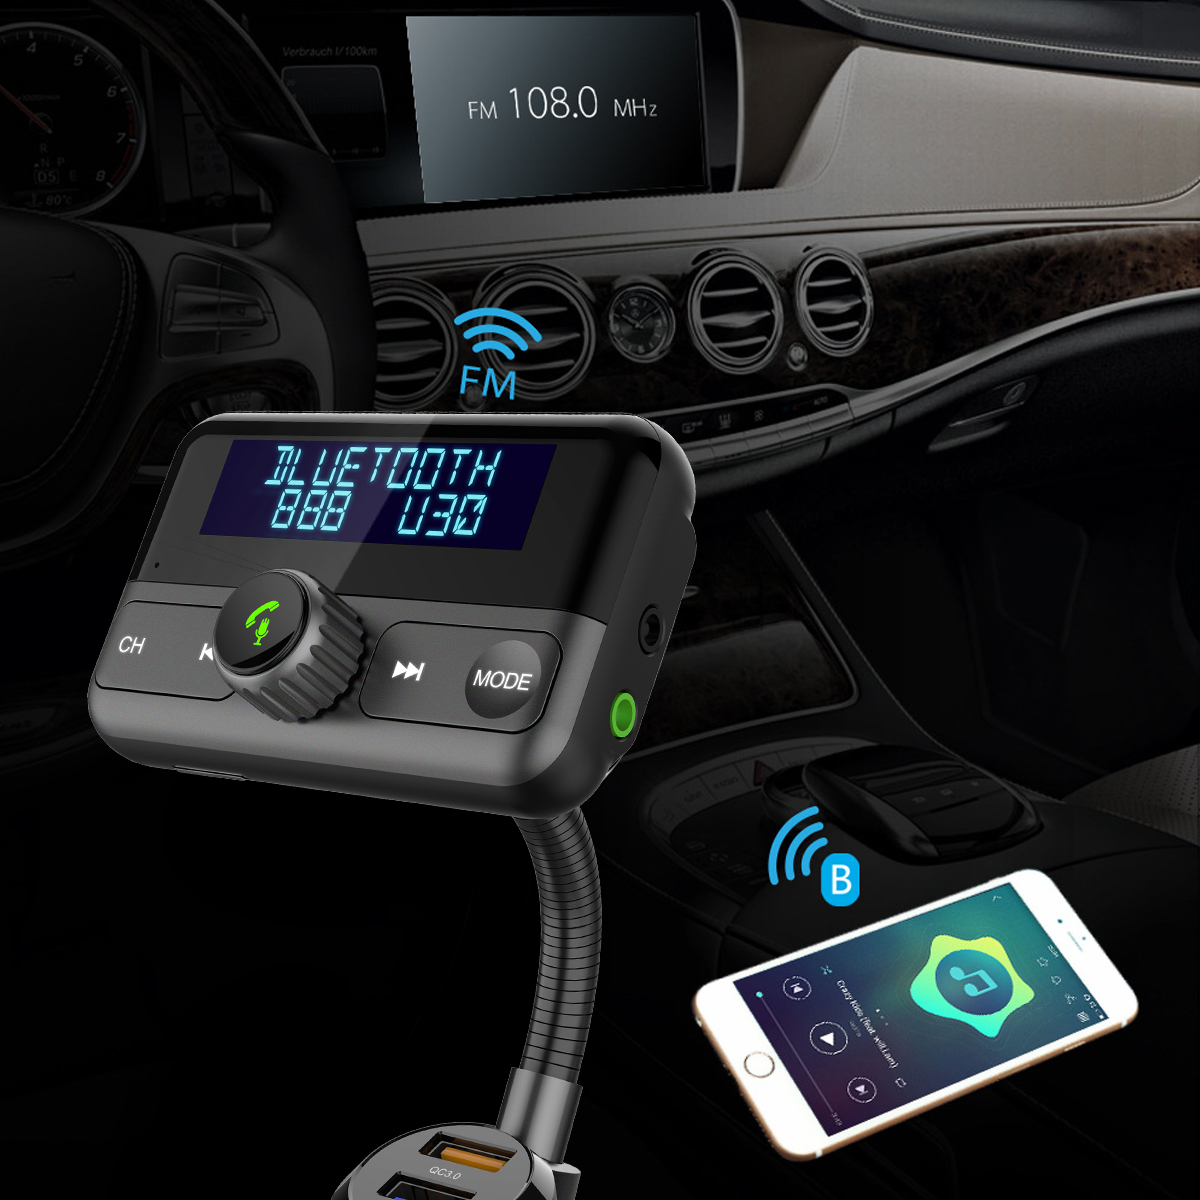 Image 5 - BT75S Bluetooth FM Transmitter YES/NO voice control Handsfree Call Car Kit with MP3 Player Dual USB Quick charge 3.0 Car Charger-in FM Transmitters from Automobiles & Motorcycles